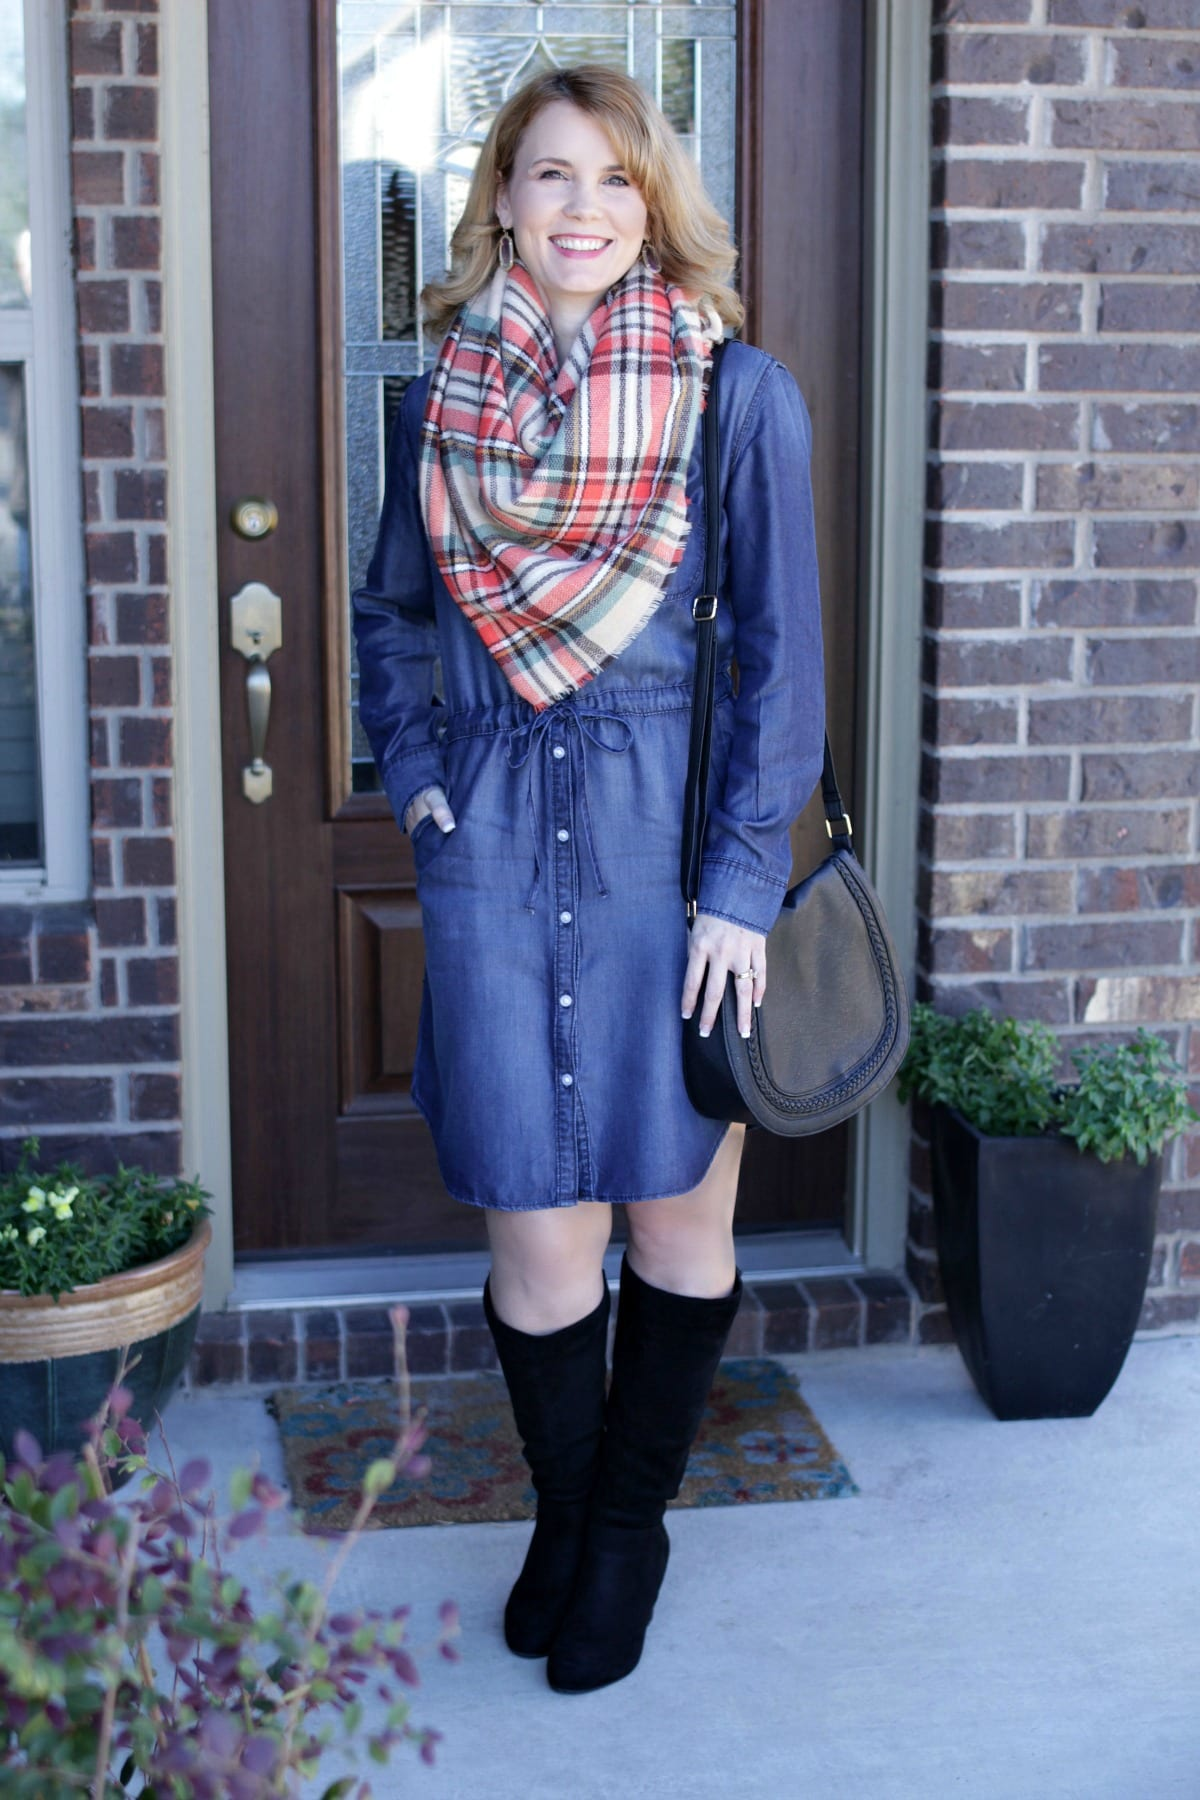 Denim Dress Outfit Add A Blanket Scarf And Tall Wedge Boots For Fun Fall